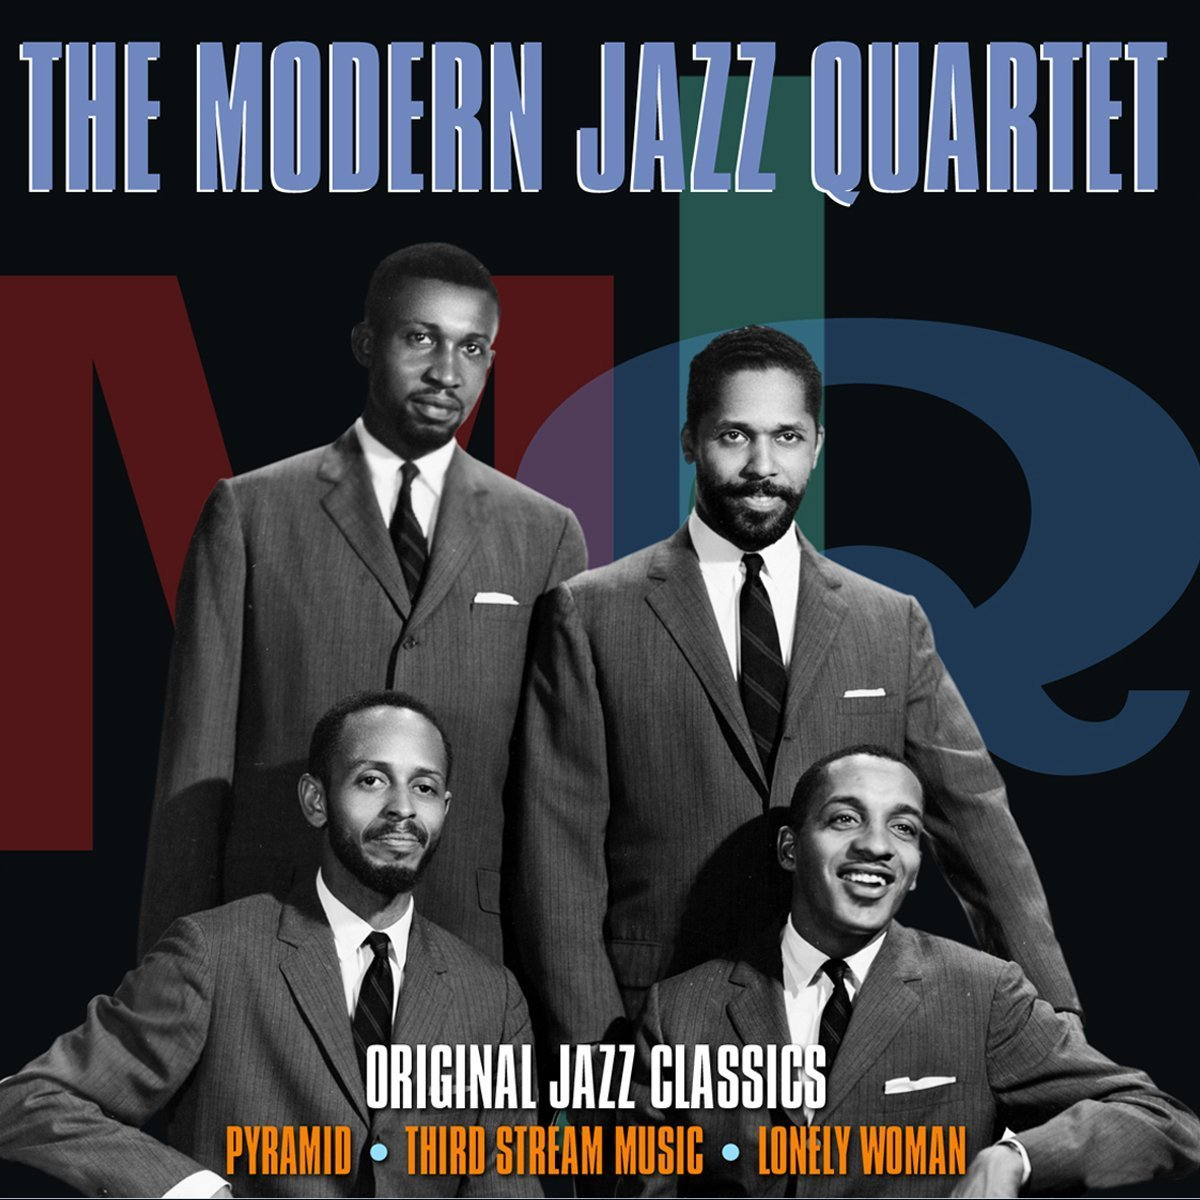 MODERN JAZZ QUARTET (3CD SET) Pyramid/Third Stream Music/Lonely Woman